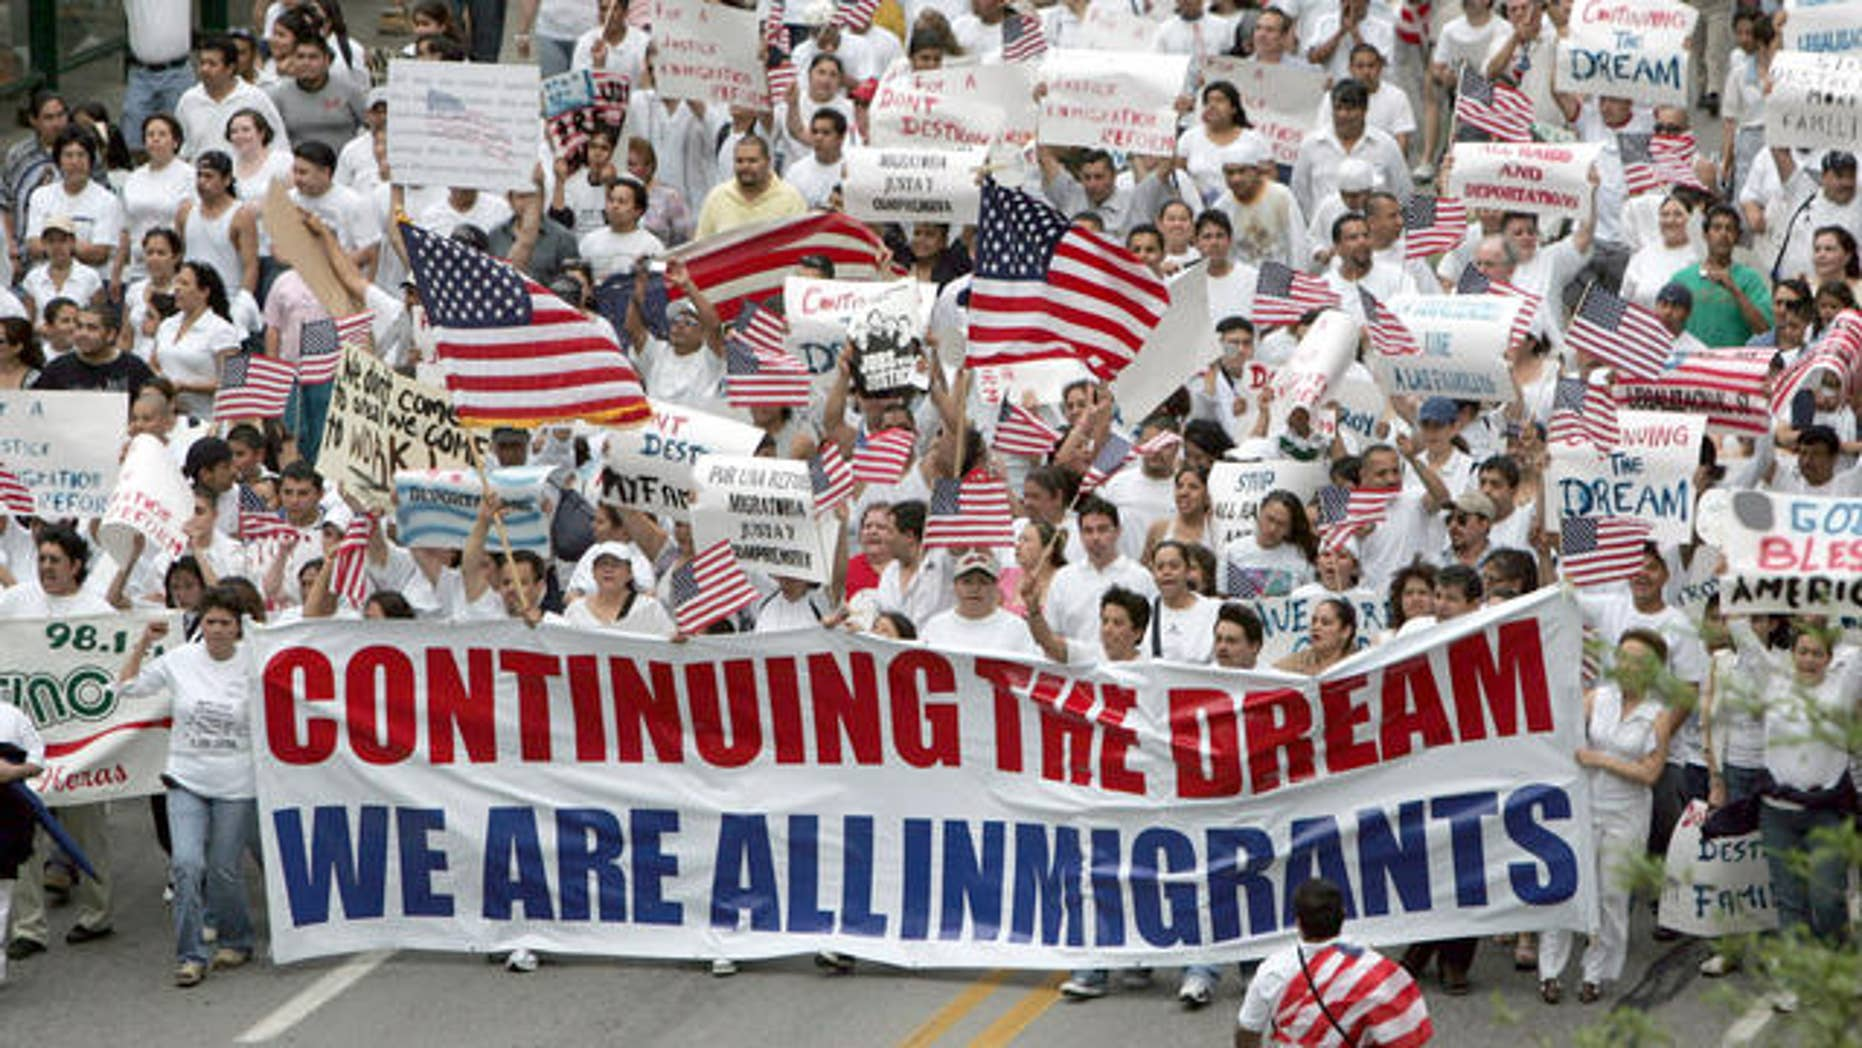 Marchers in support of immigration reform walk the streets of Indianapolis, Tuesday, May 1, 2007. Marches and rallies took place in dozens of cities across the United States. (AP Photo/AJ Mast)